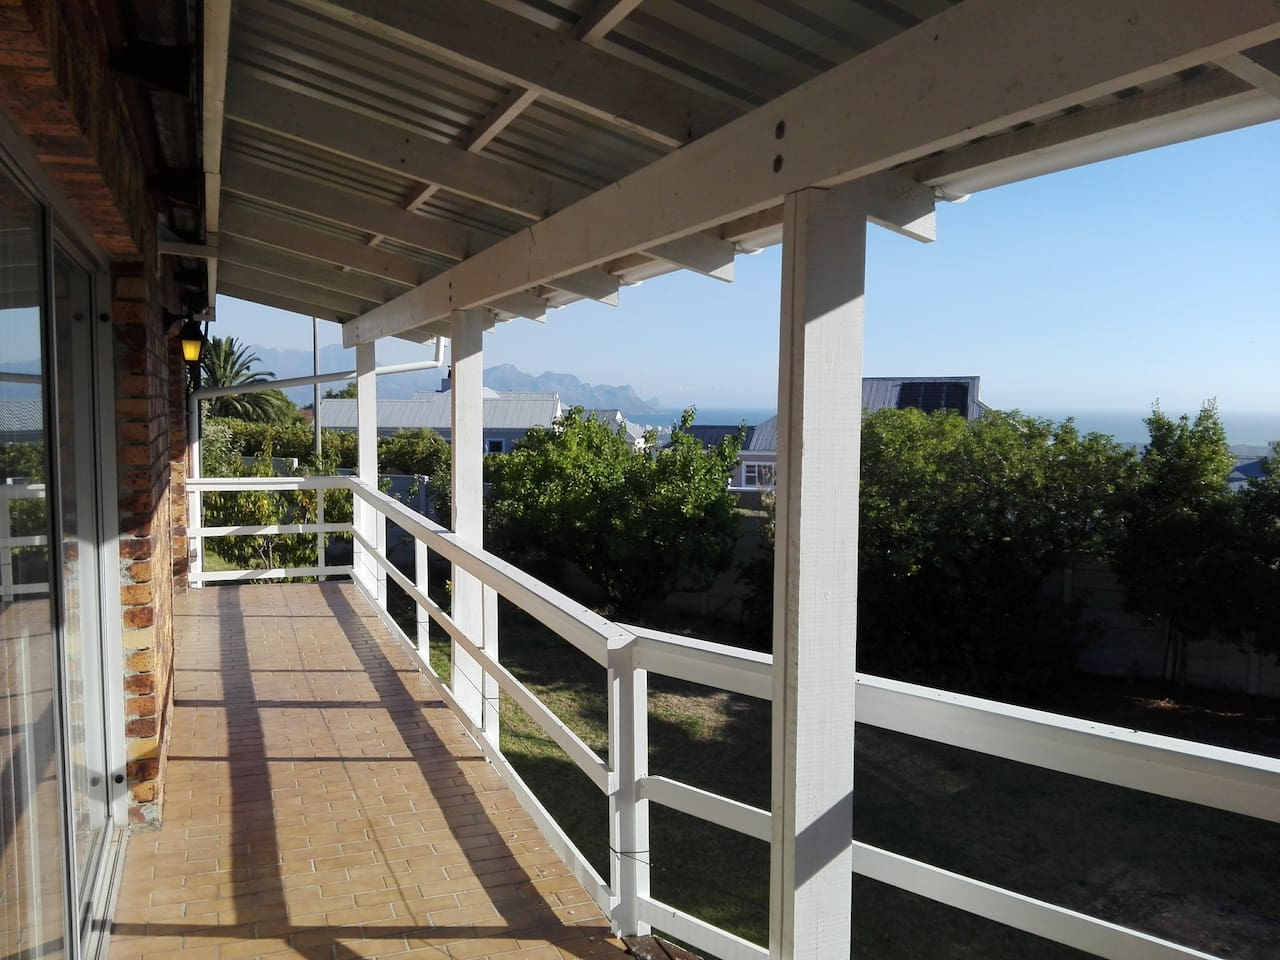 A view over the Hottentots Holland mountains from the patio